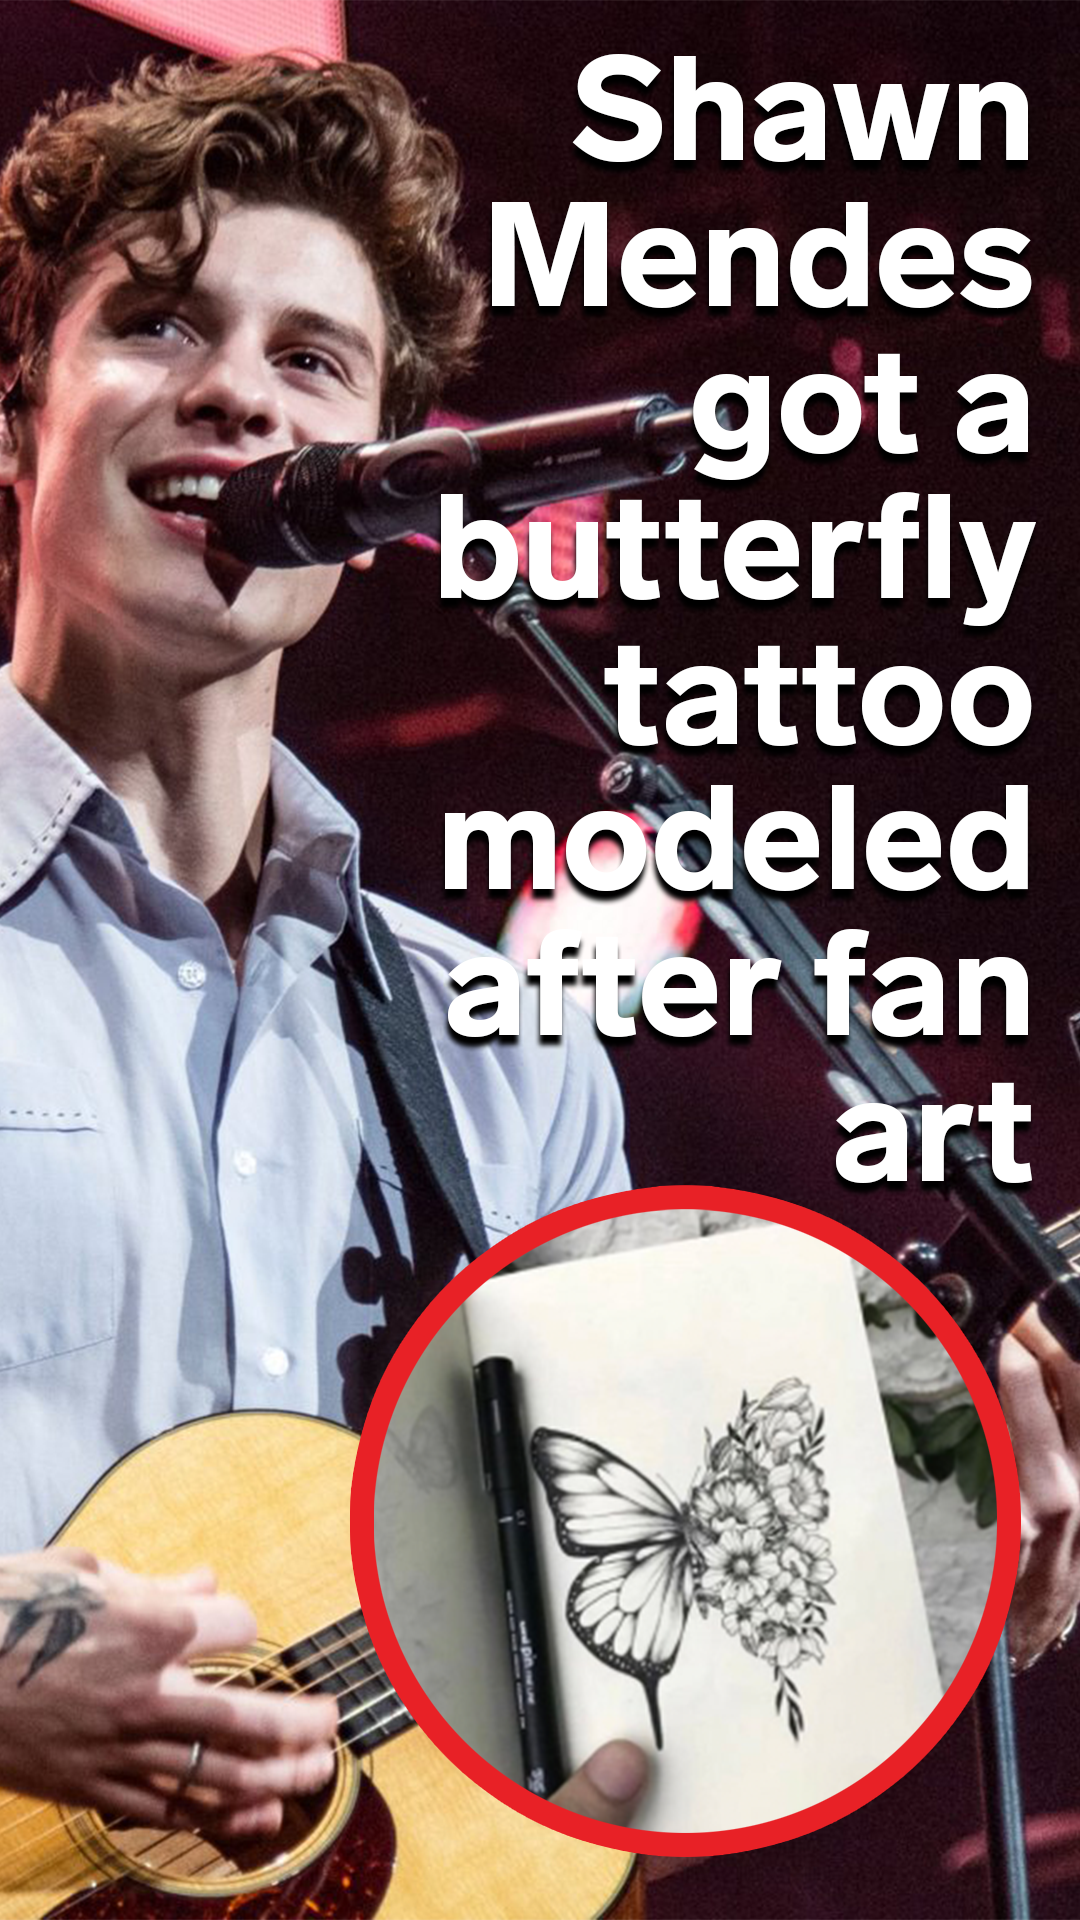 Shawn Mendes got a butterfly tattoo in real life after a